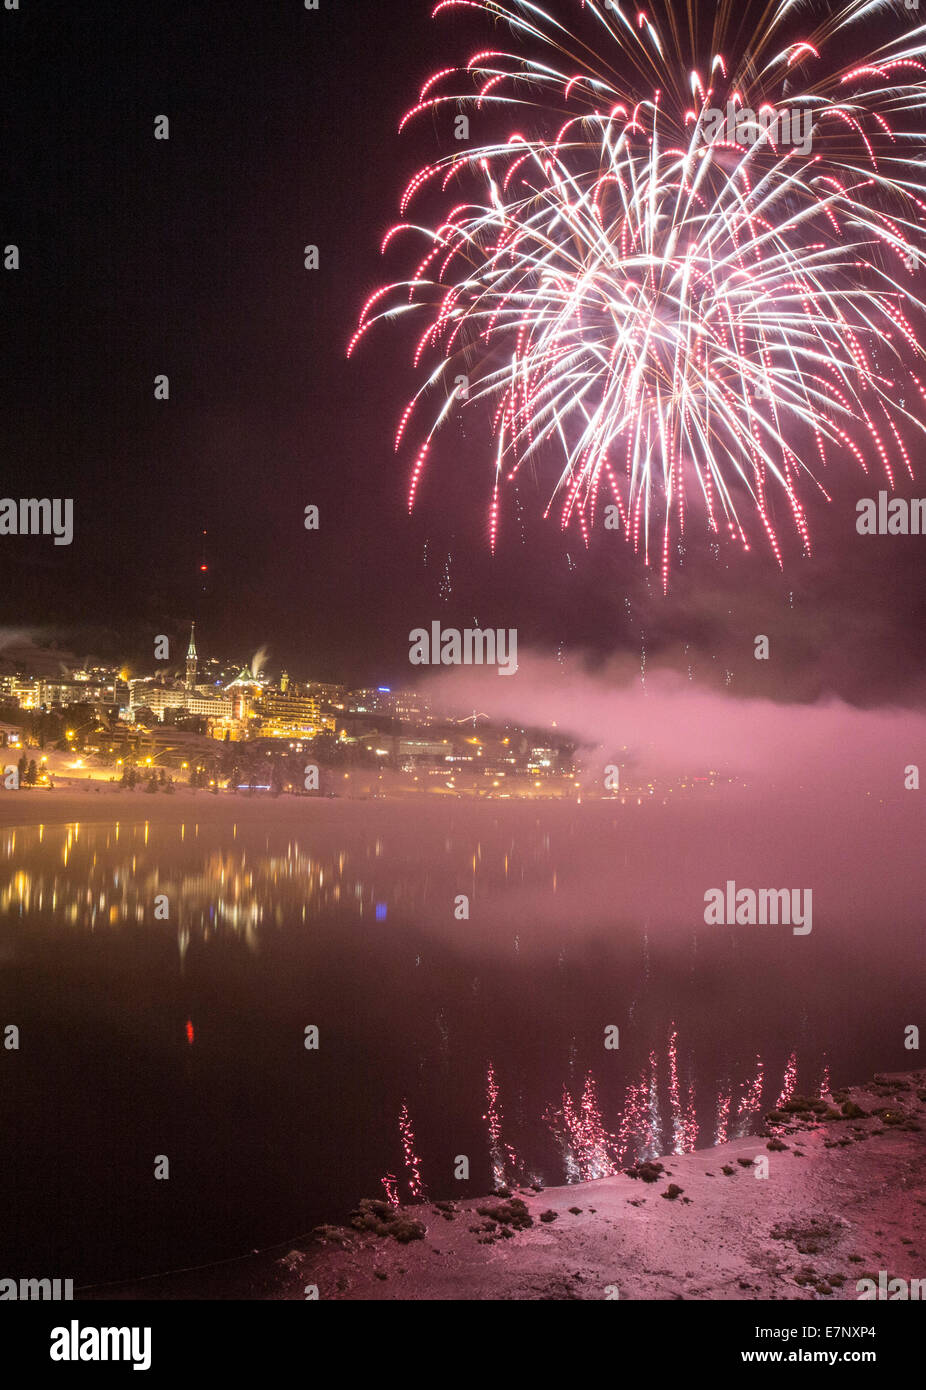 Saint Moritz, St. Moritzersee, New Year, fireworks, Saint Moritz, St. Moritz, village, festival, Openair, event, - Stock Image